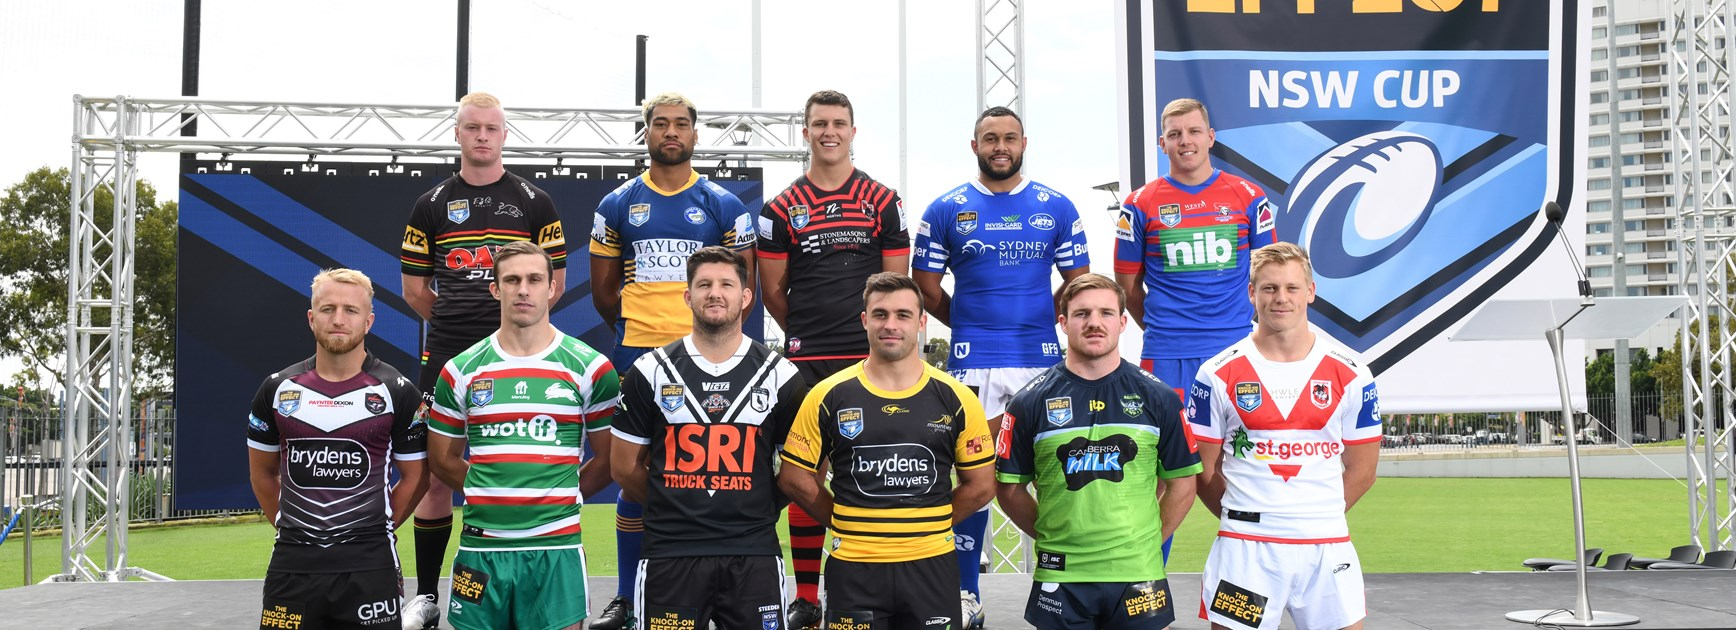 2021 The Knock-On Effect NSW Cup competition launched